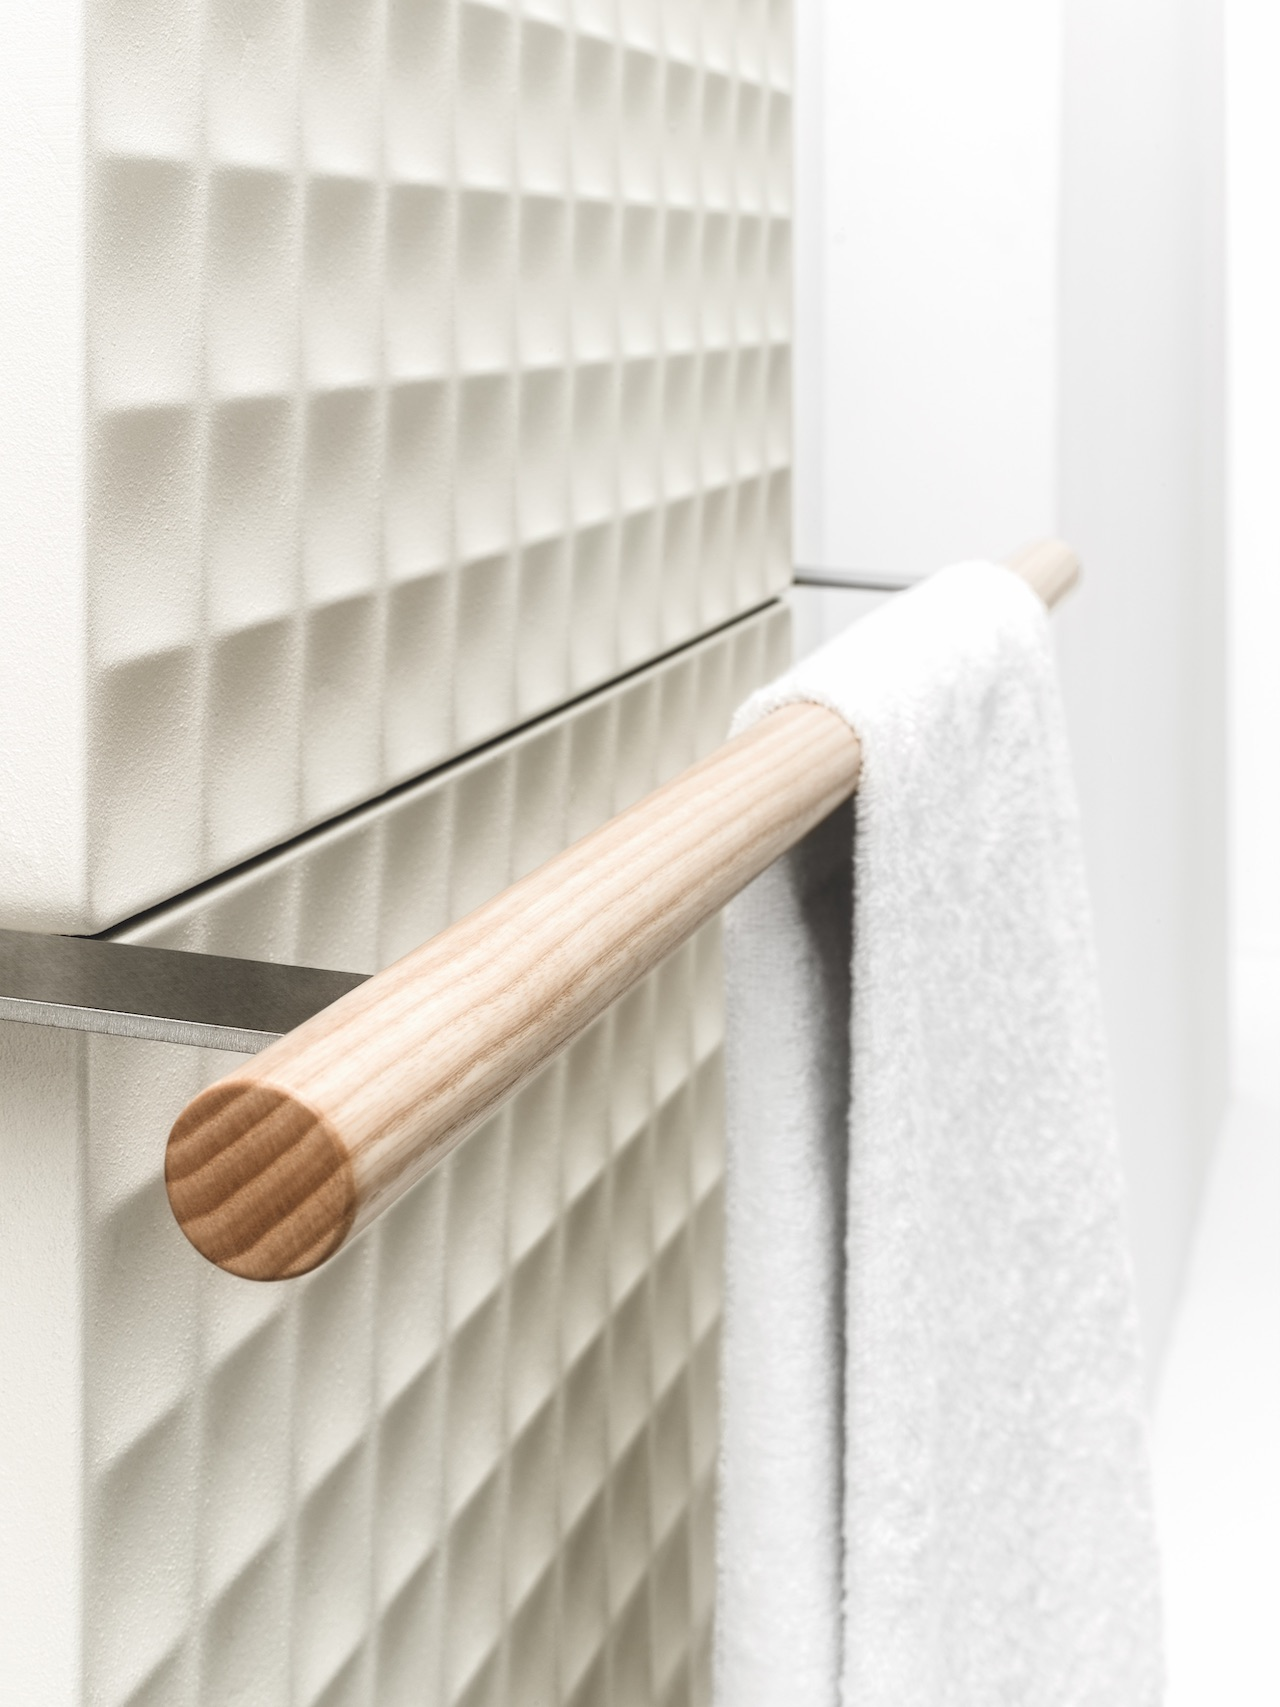 Waffle Radiator with handle, design Piero Lissoni 2020, Antrax IT